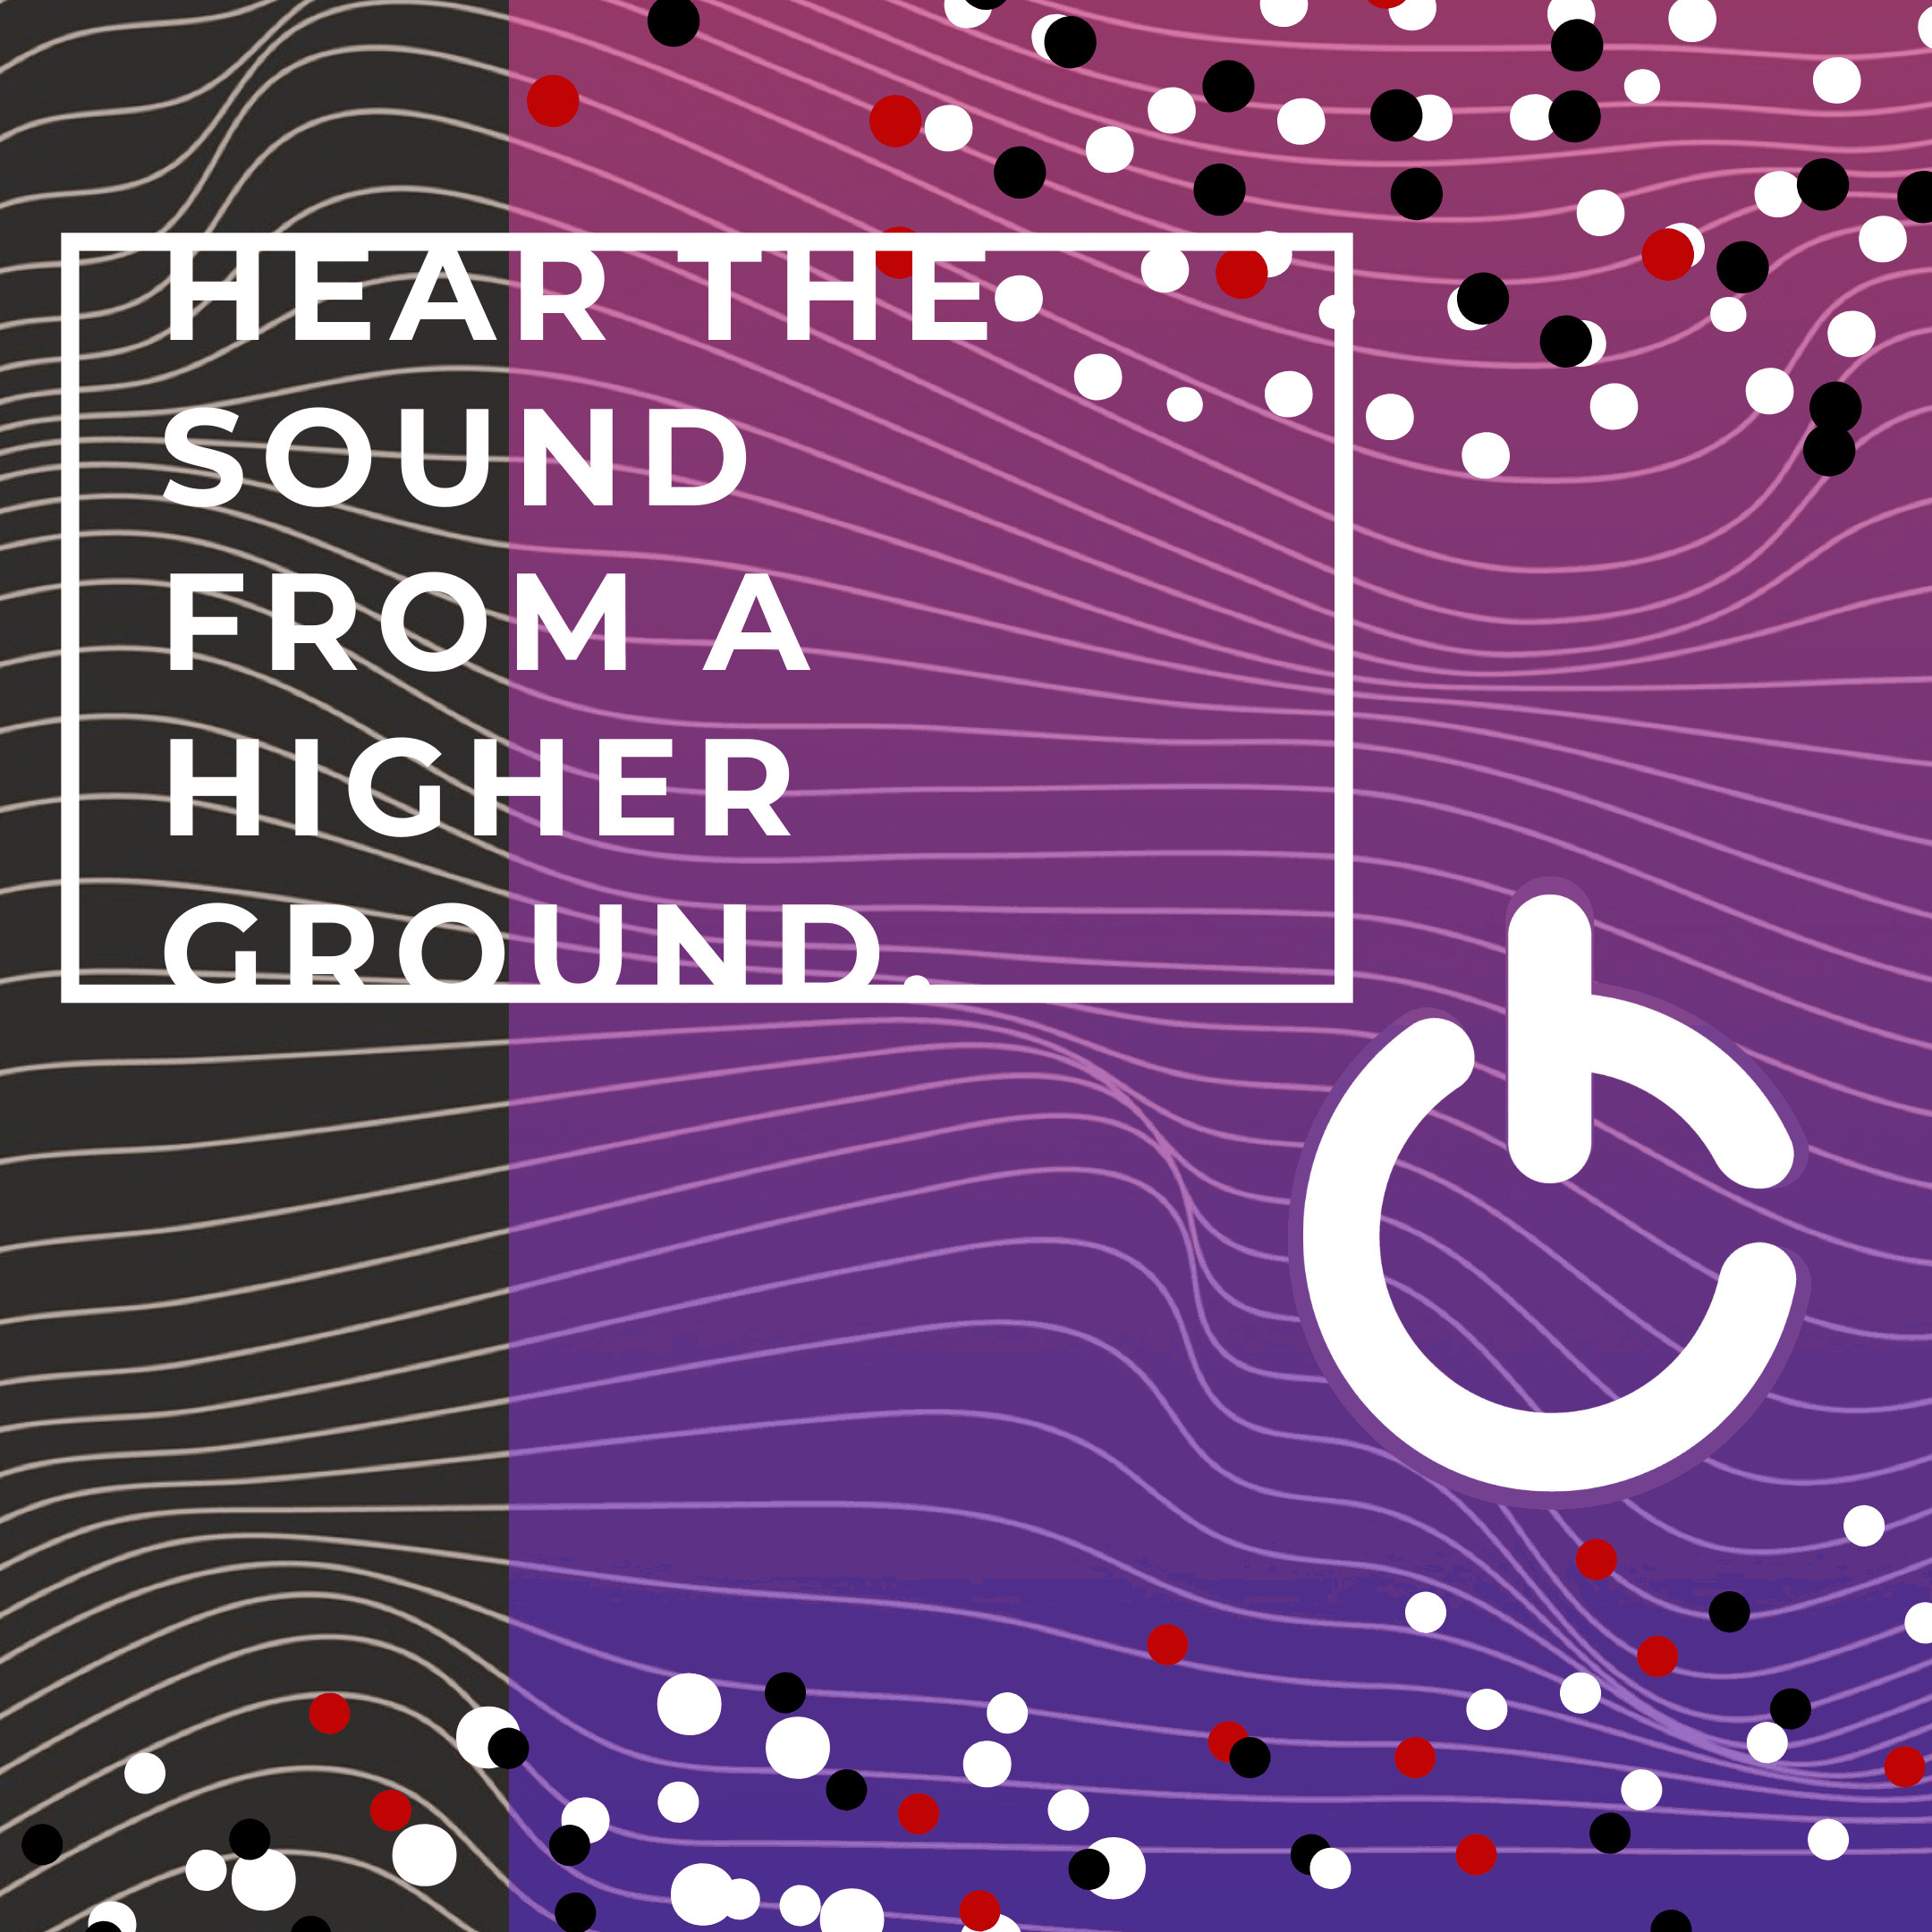 Hear the sound from a higher ground